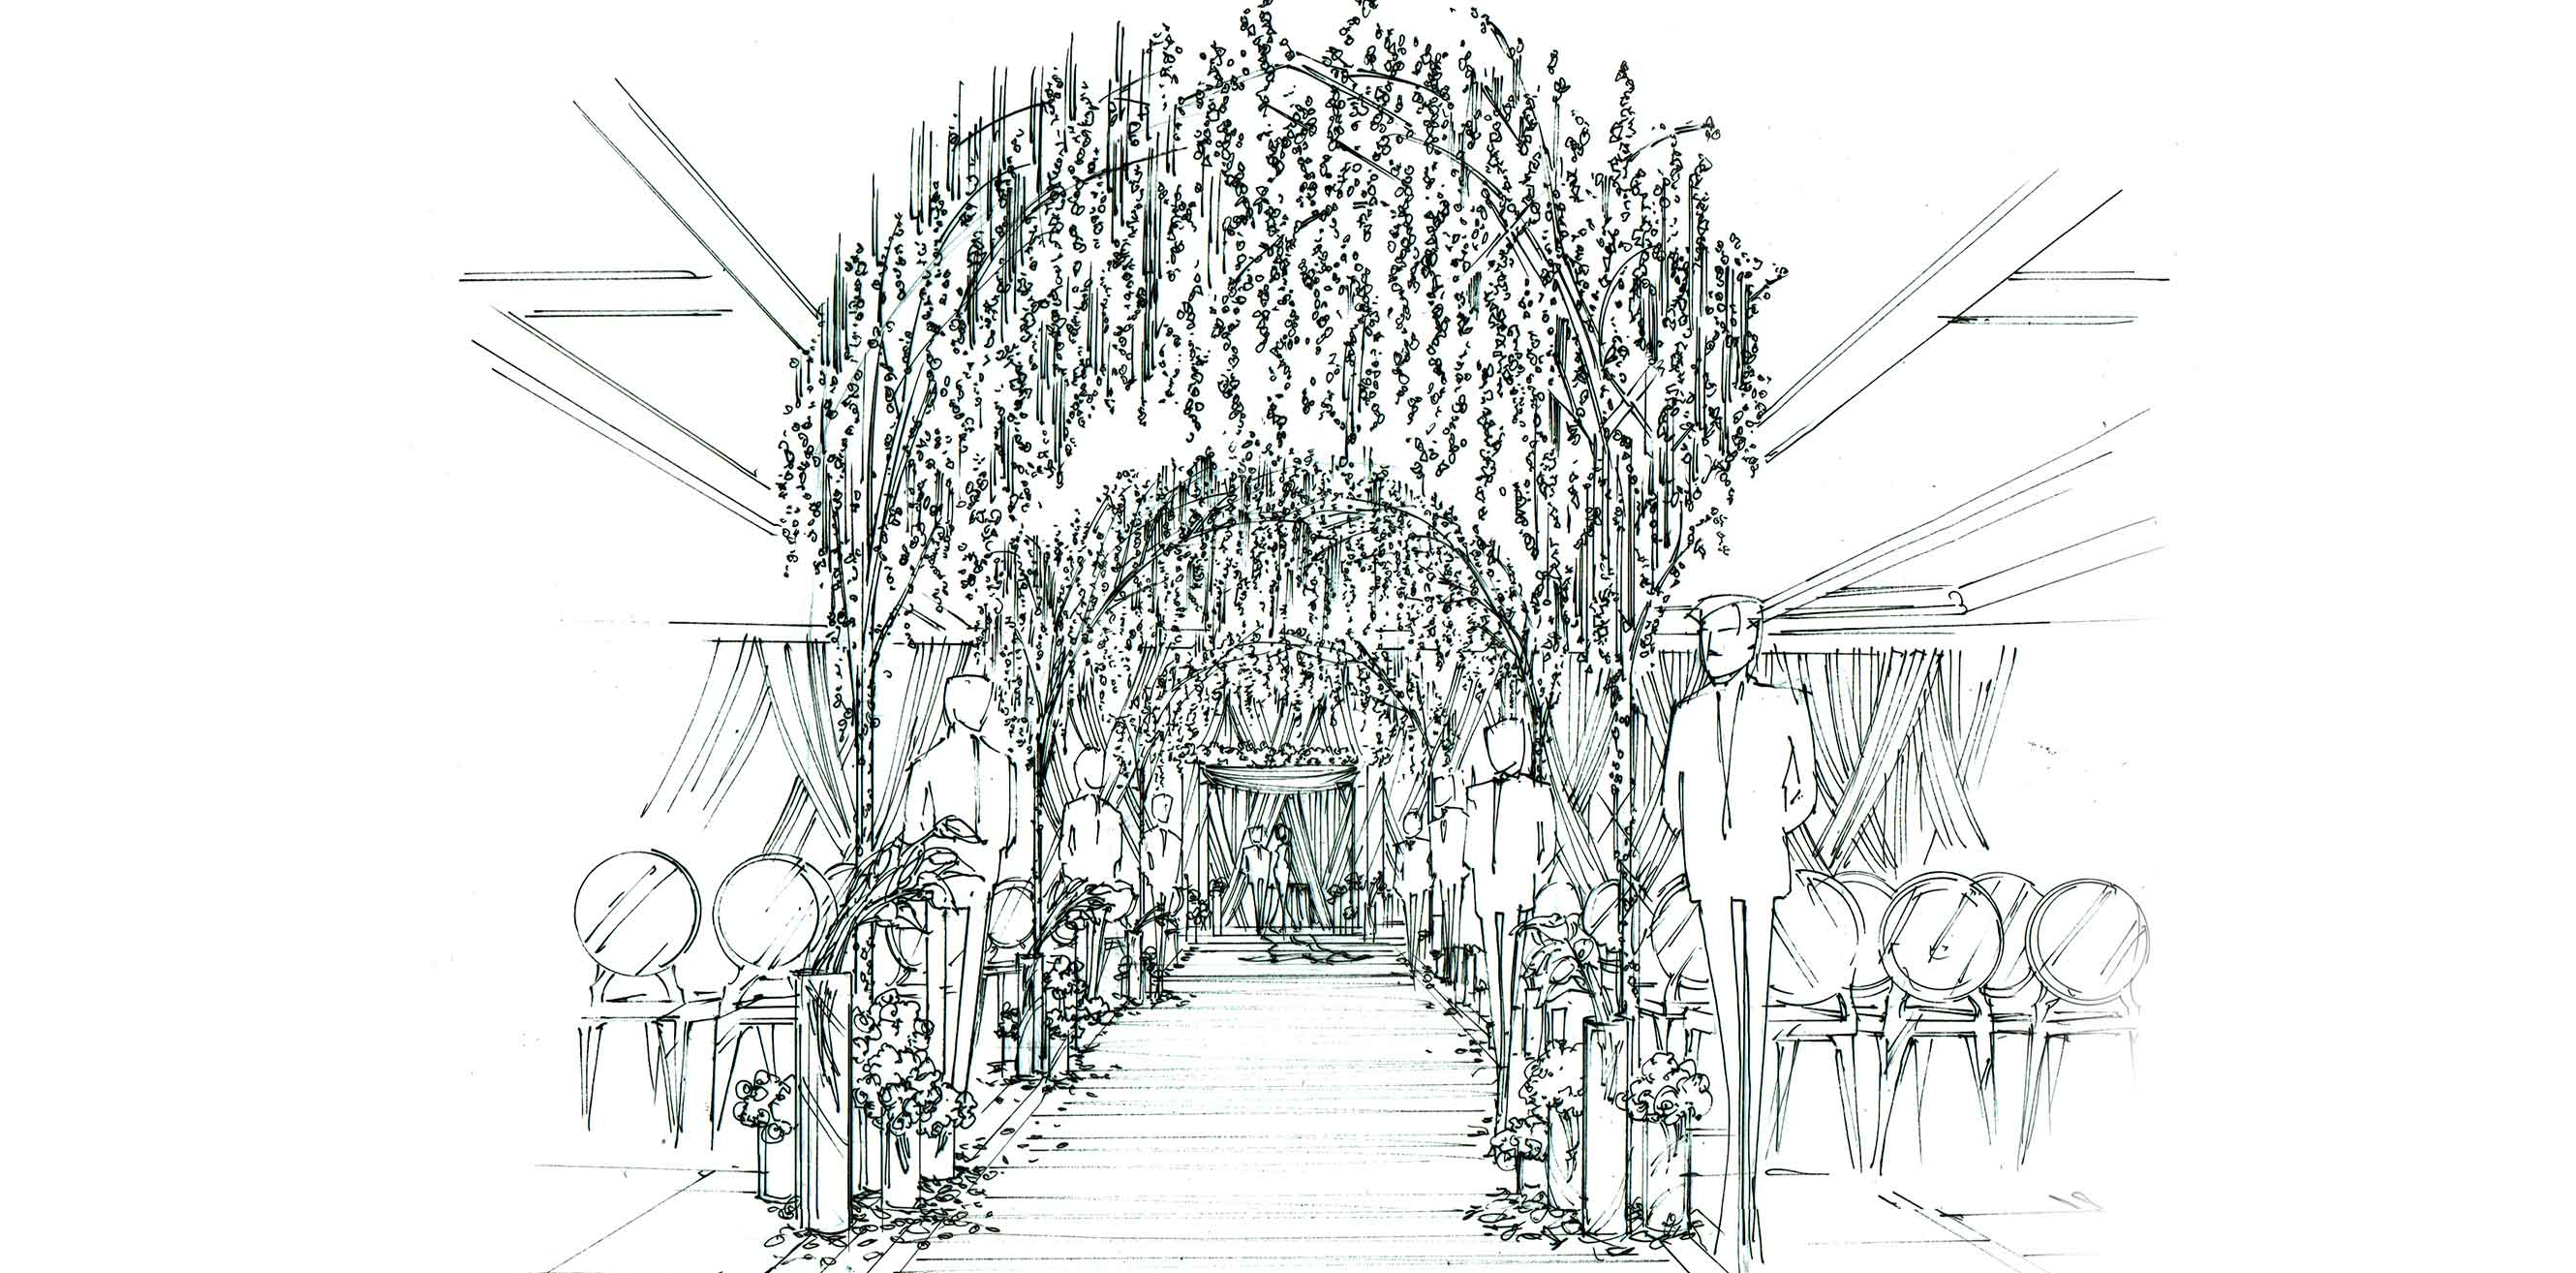 Artist's rendering of a wedding aisle